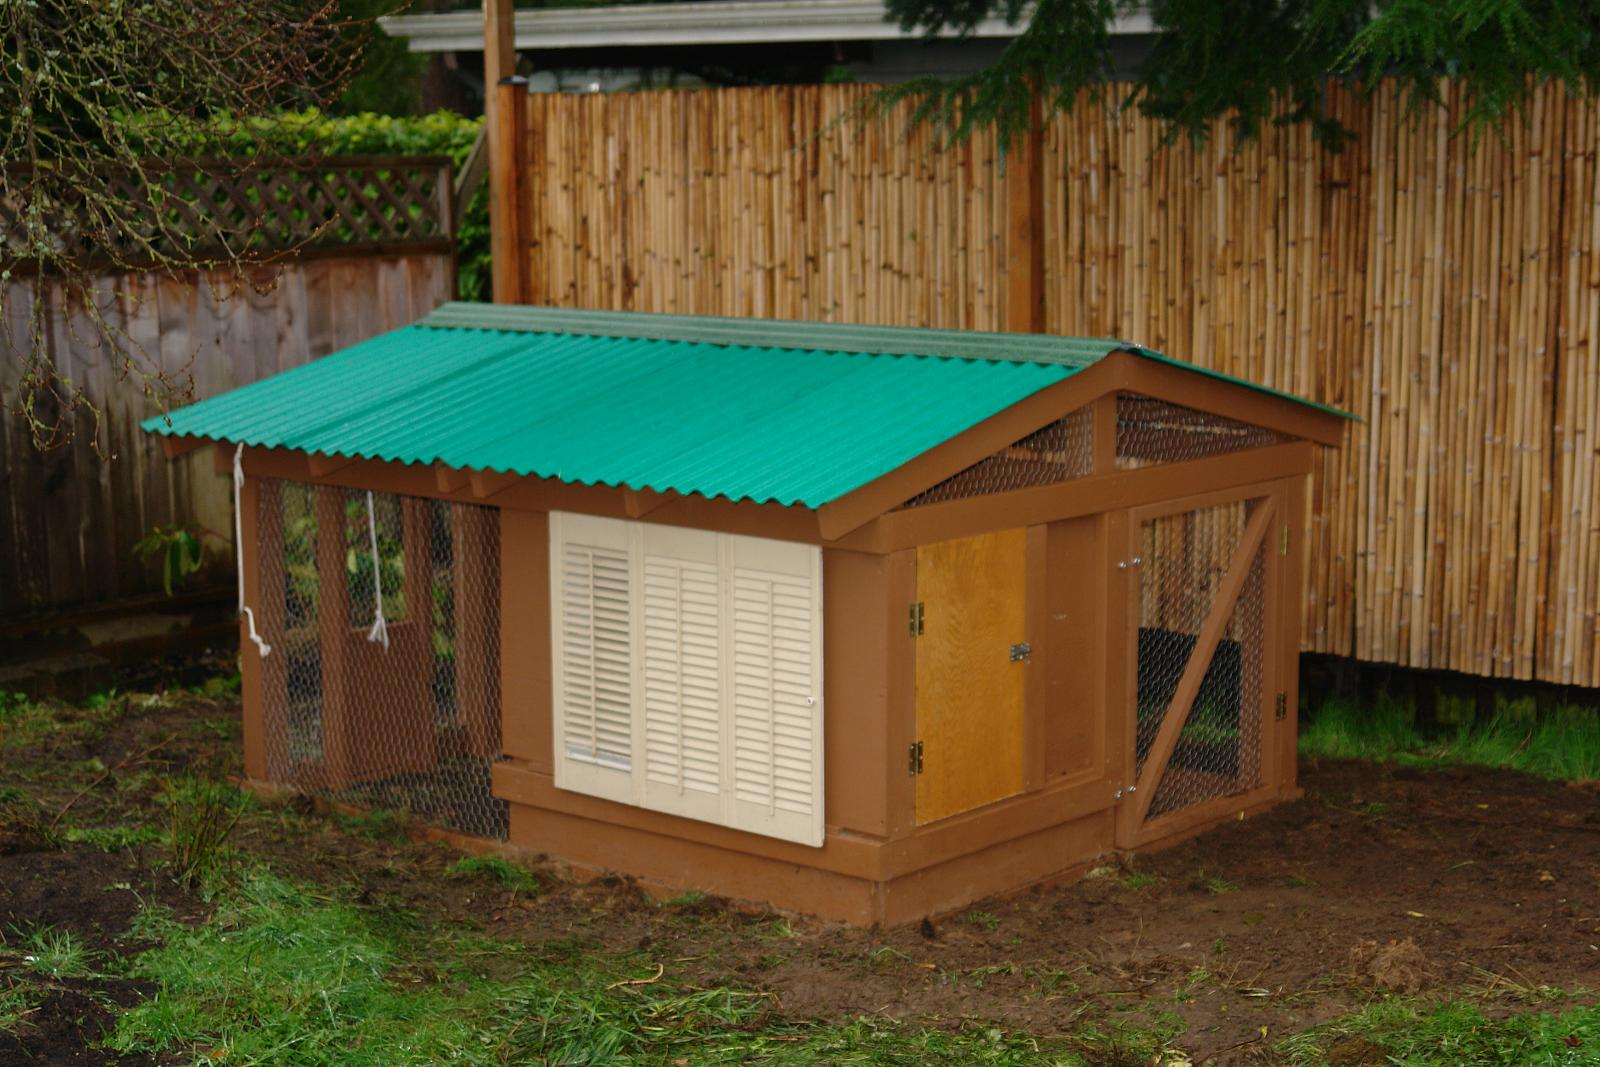 File:Backyard Chicken Coop